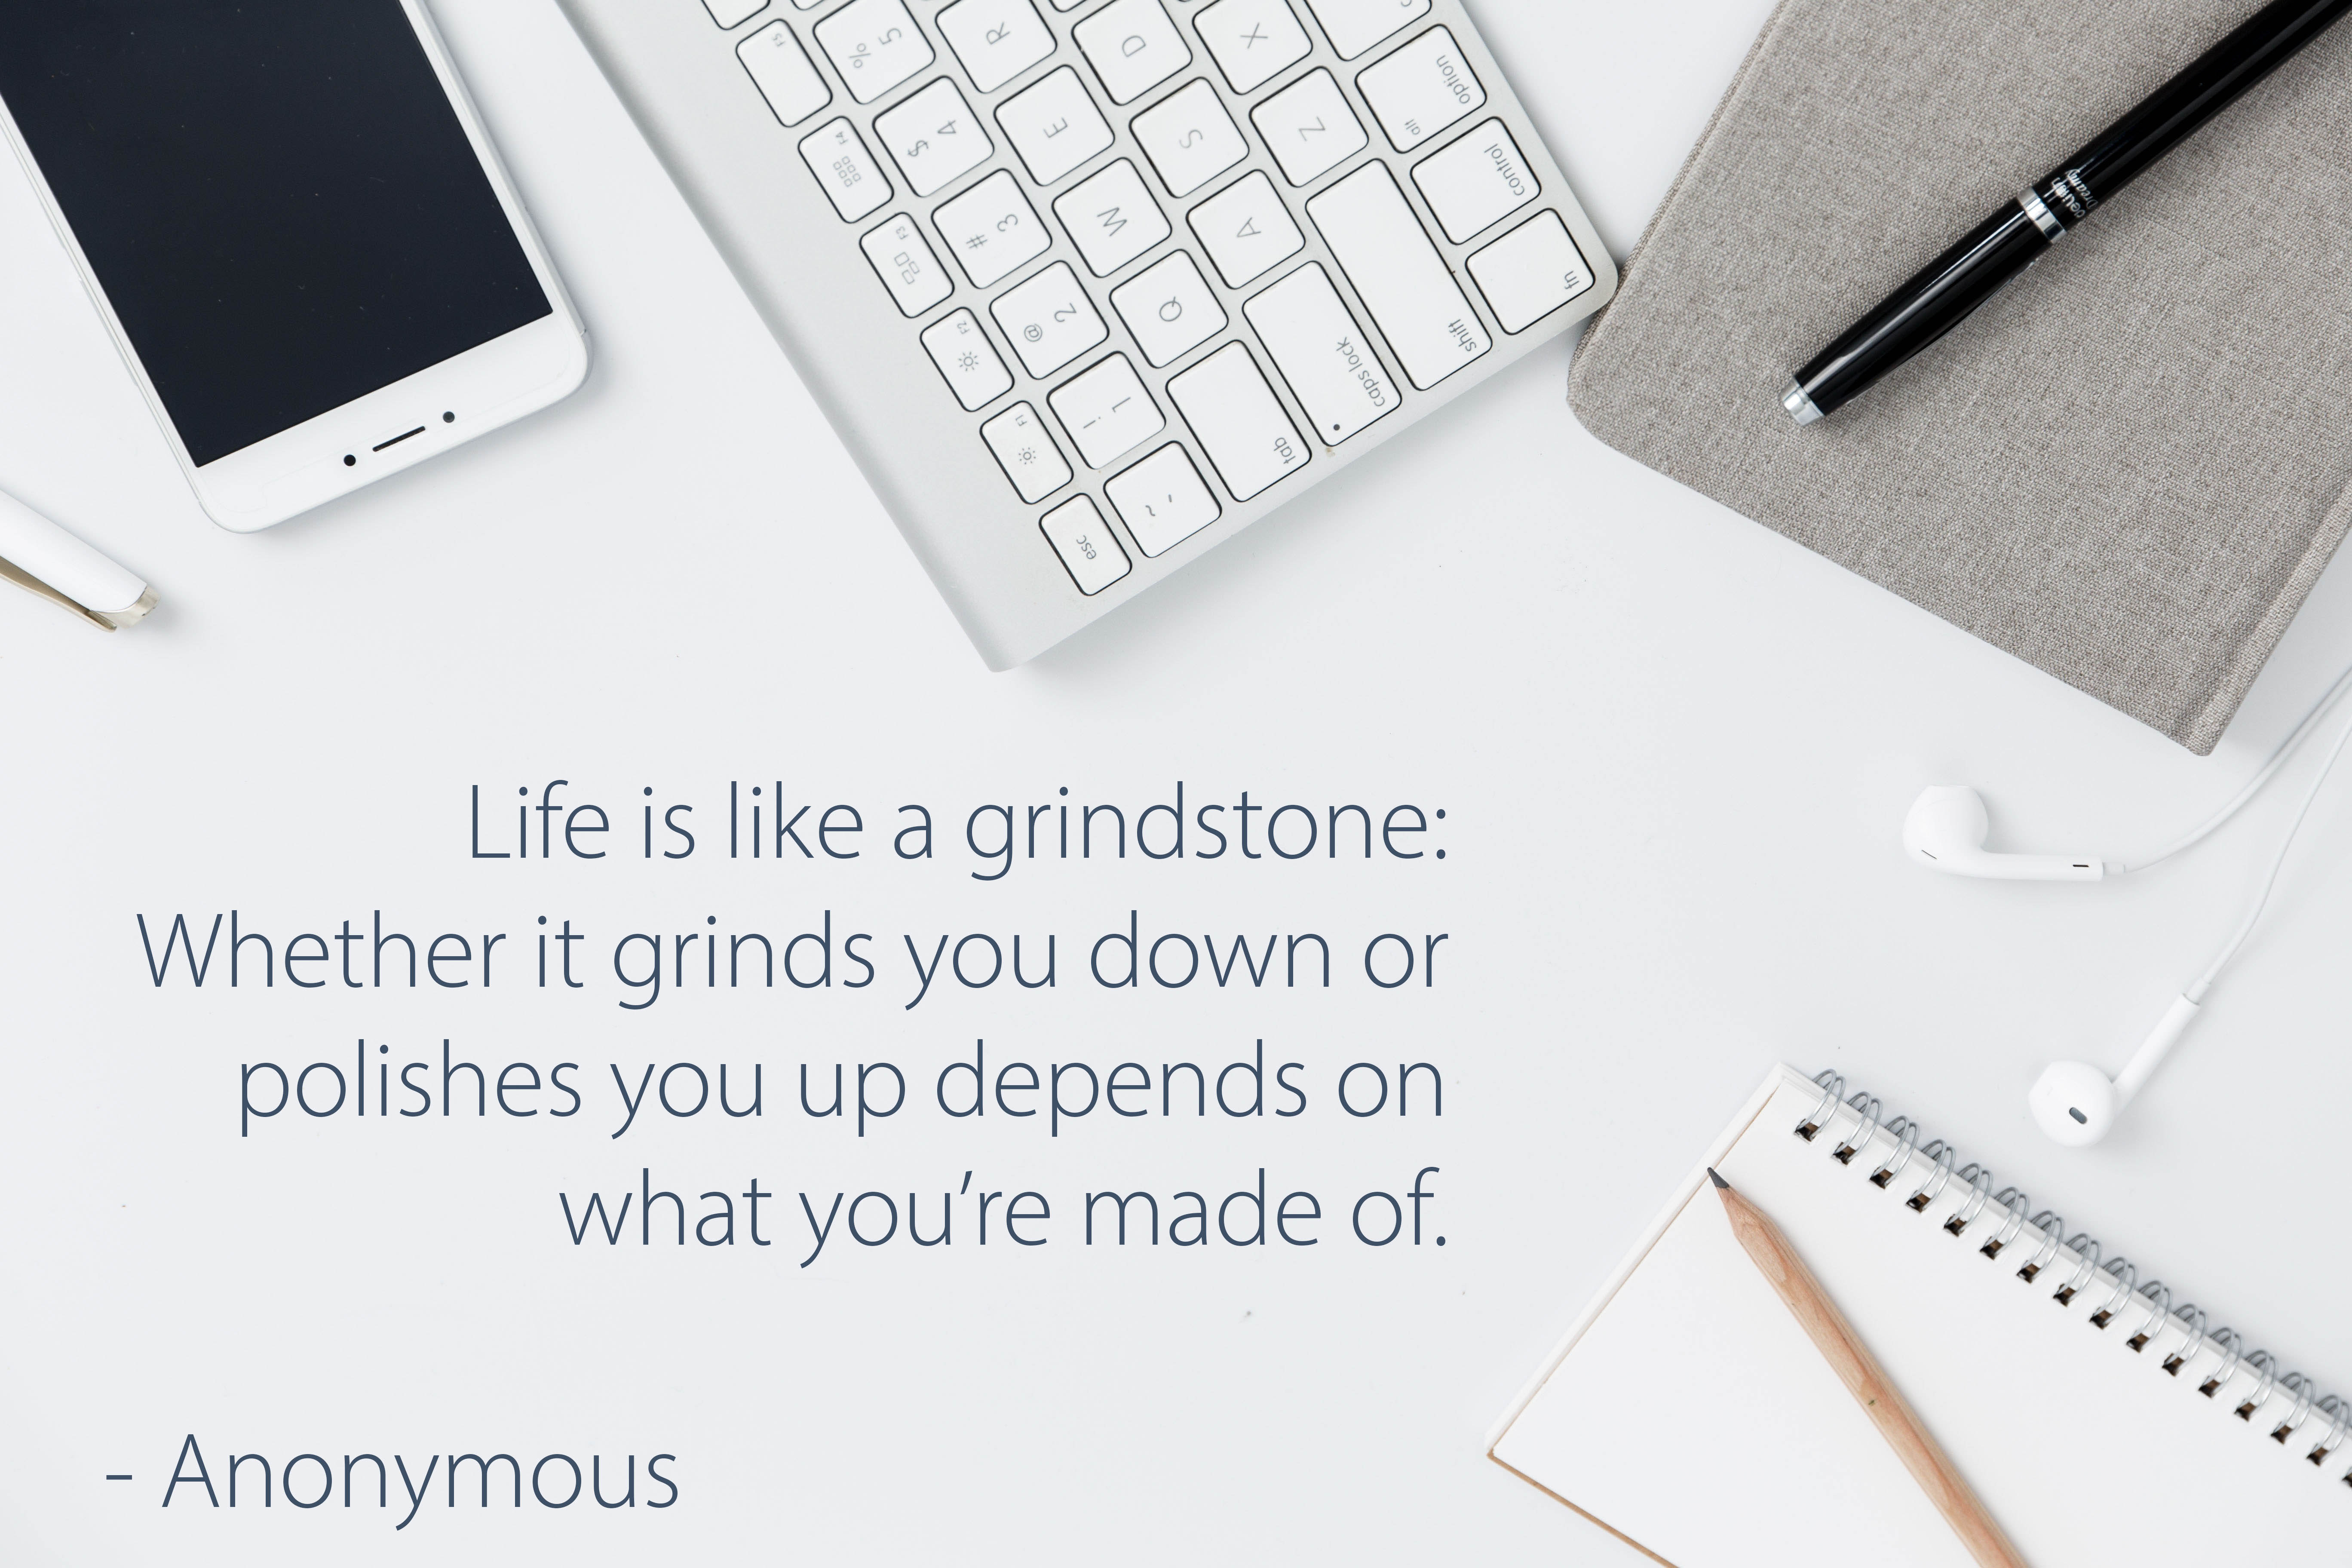 Life is like a grindstone: Whether it grinds you down or polishes you up depends on what you're made of.